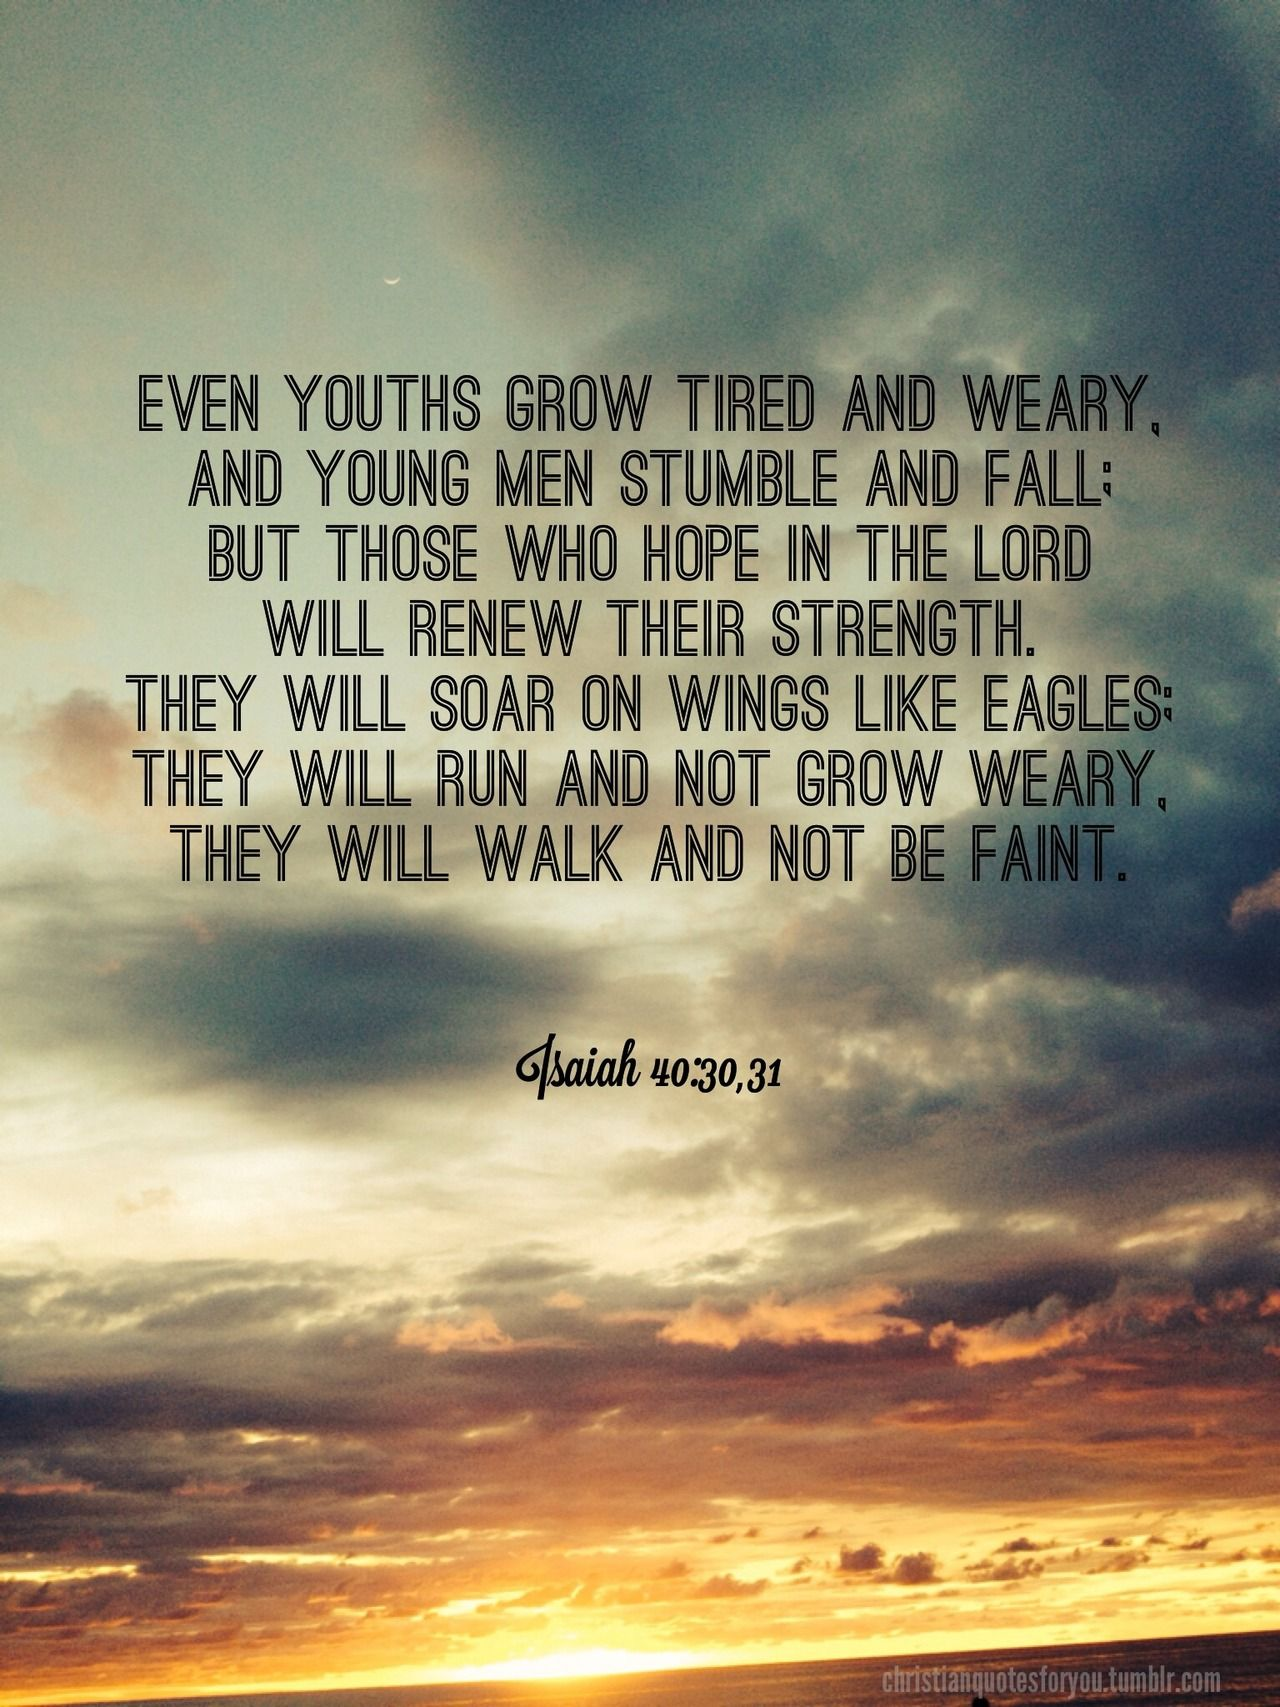 Inspirational Quotes Tumblr New Inspirational Bible Verses Tumblr  Inspirational Quotes About . Review